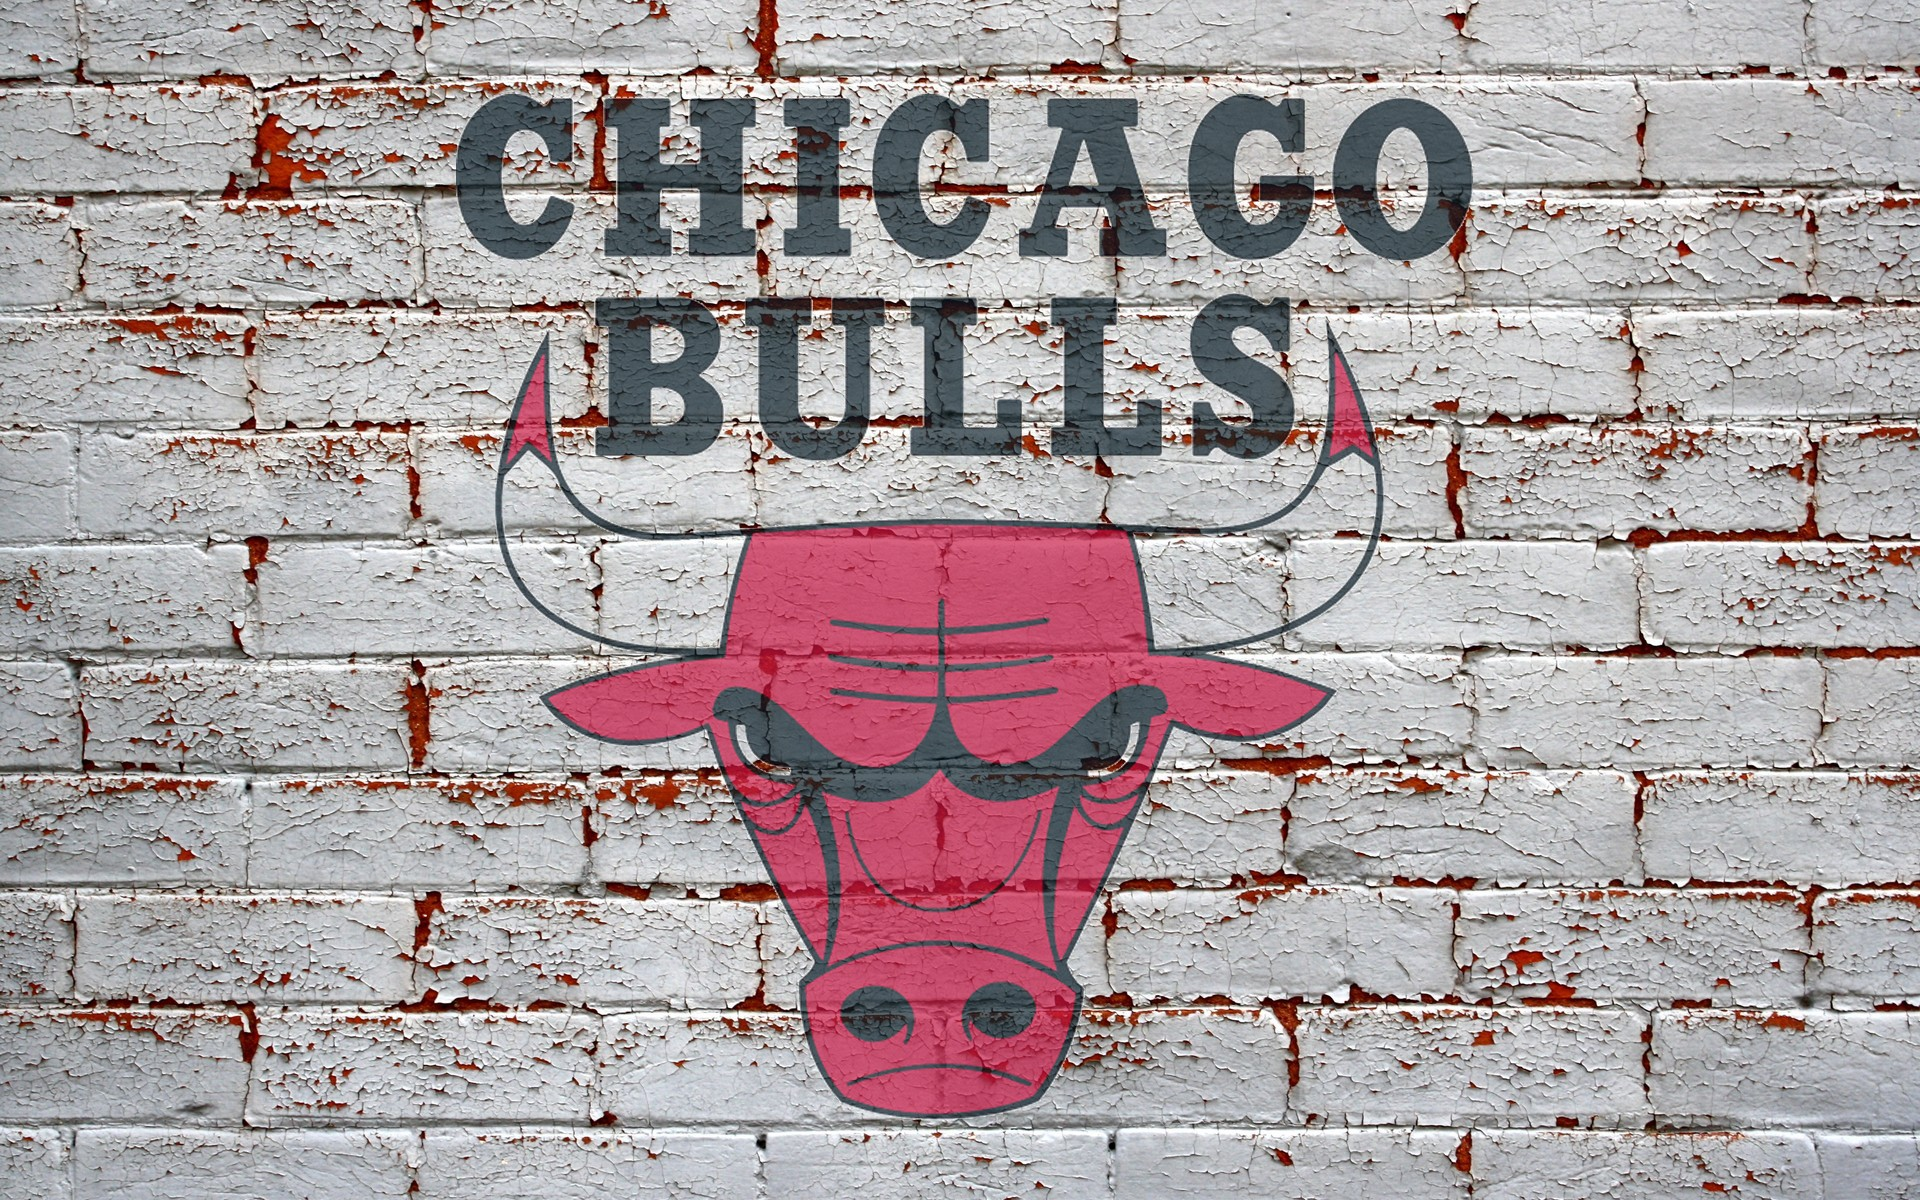 brick nba latest wallpaper bulls chicago logo 1920x1200